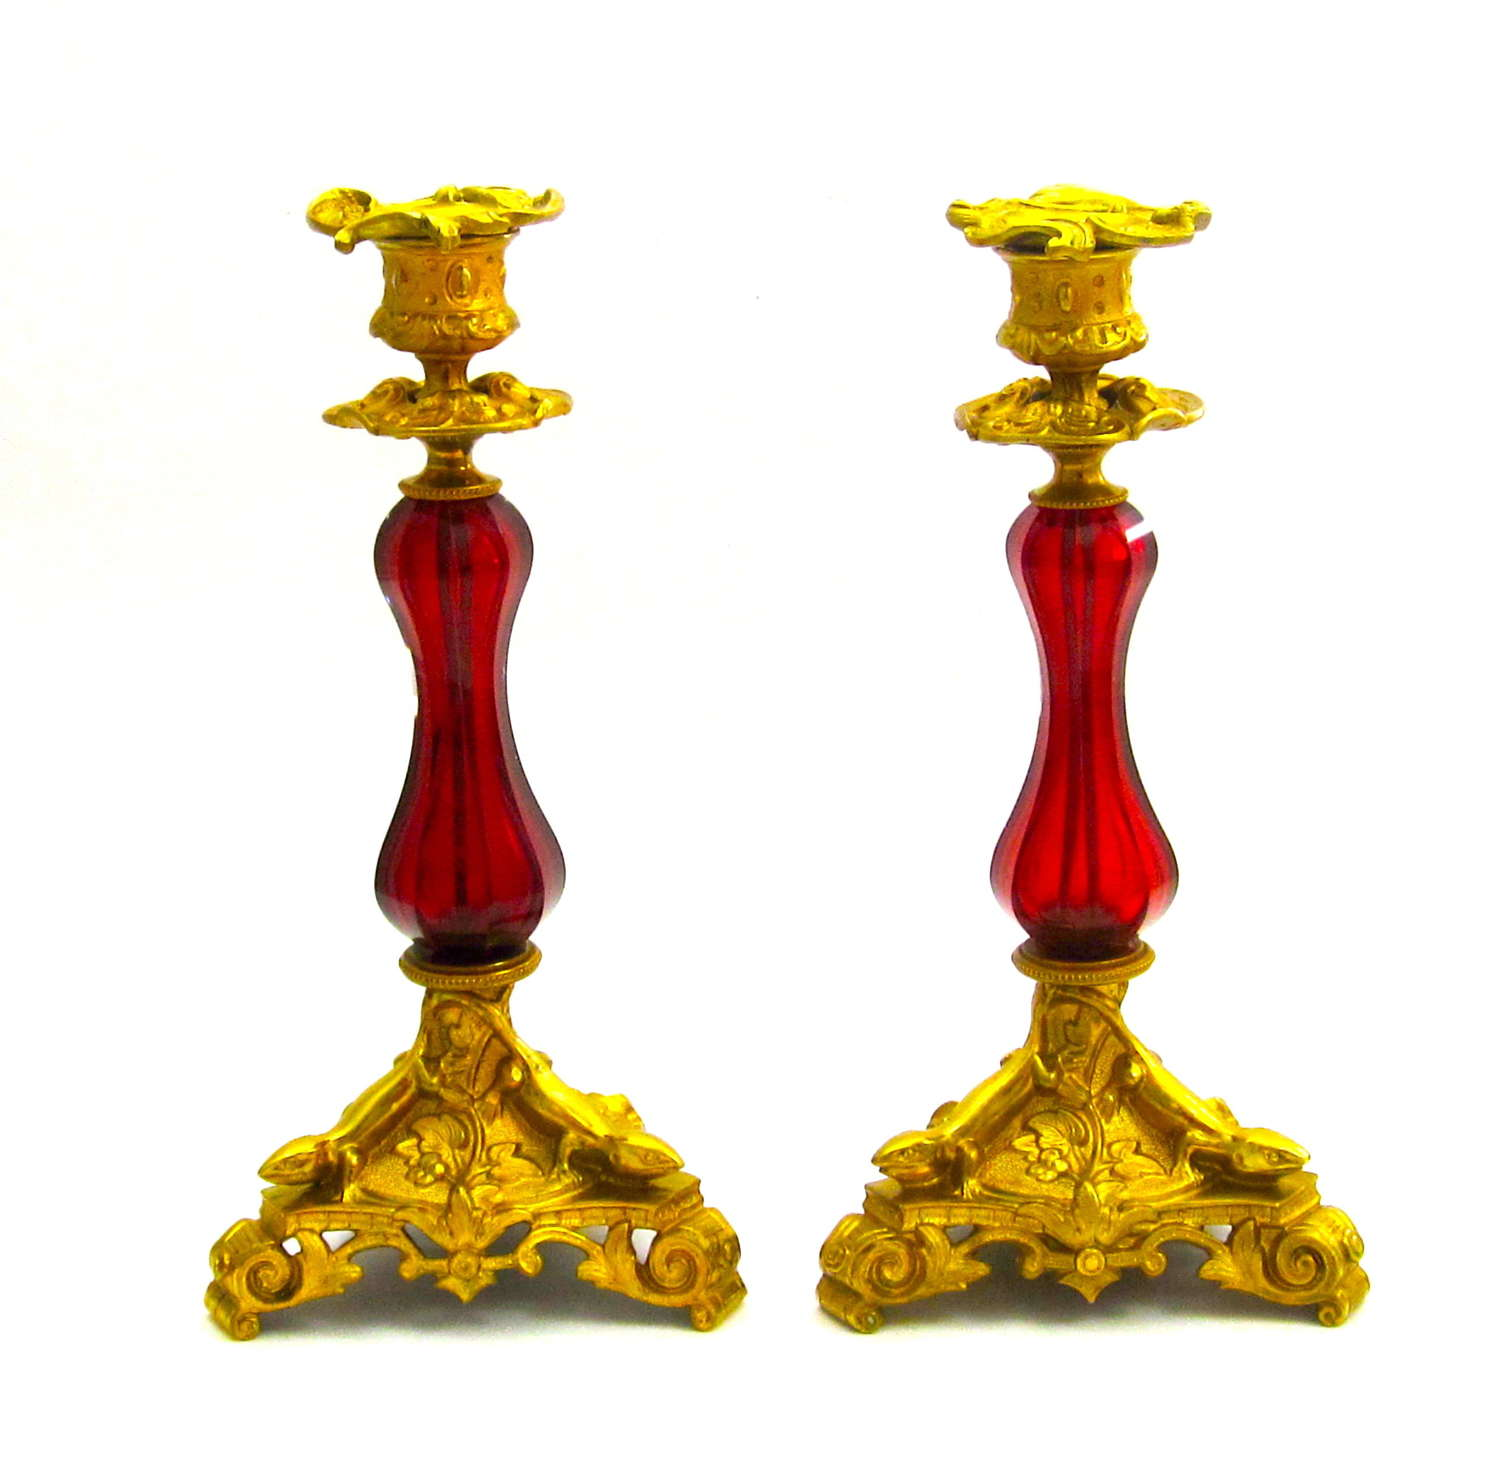 Pair of Super Antique French Ruby Red Crystal Candlesticks